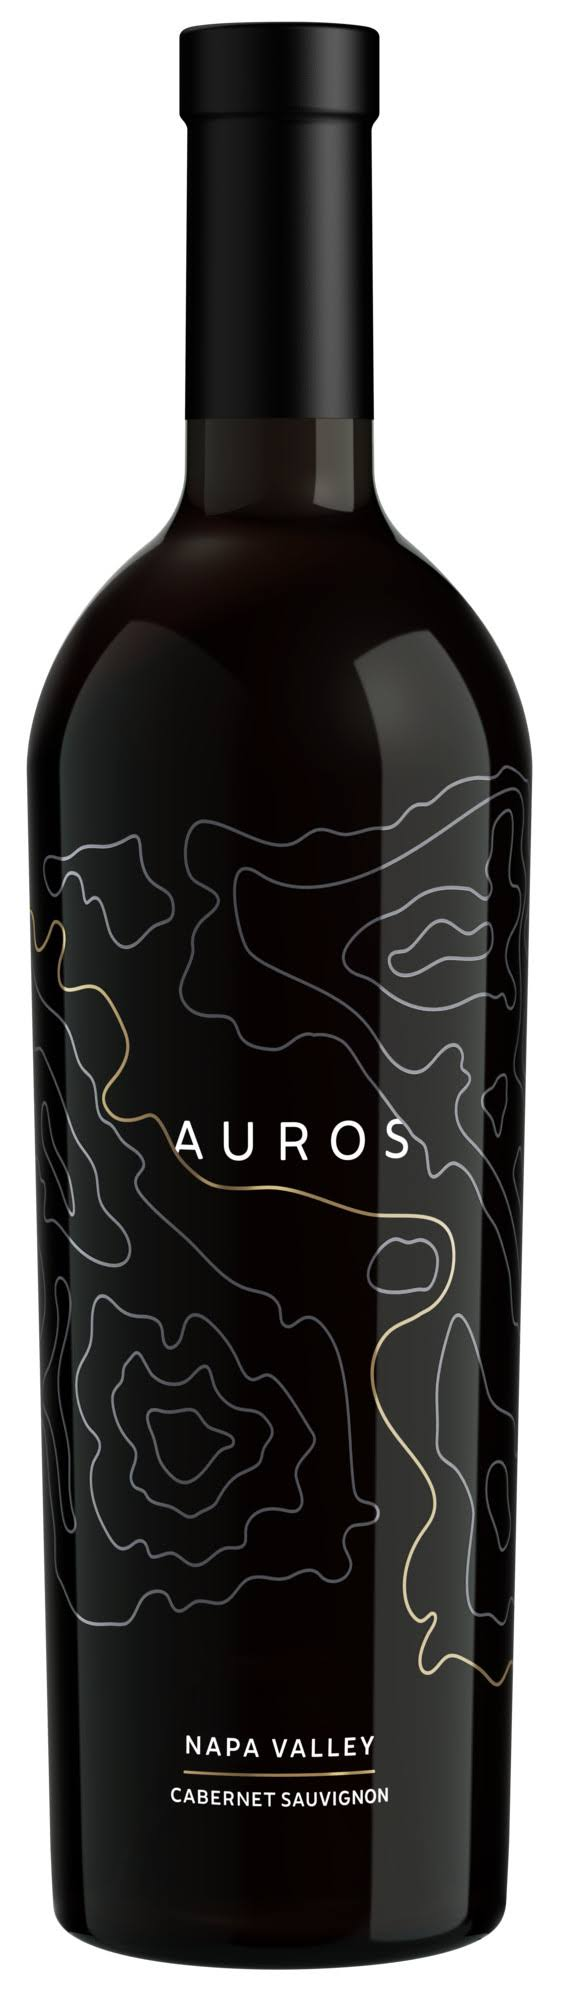 AUROS Napa Valley Cabernet Sauvignon 2015 750ml